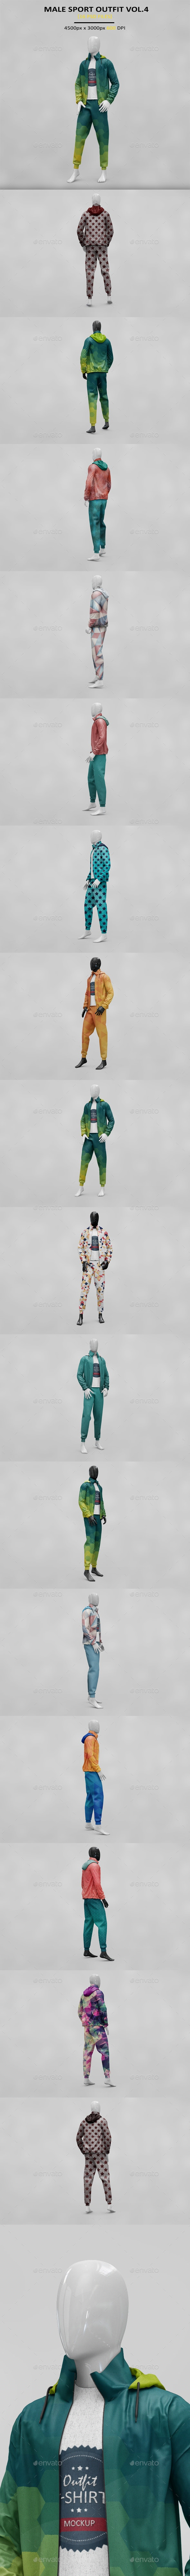 Male Sport Outfit MockUp - Product Mock-Ups Graphics